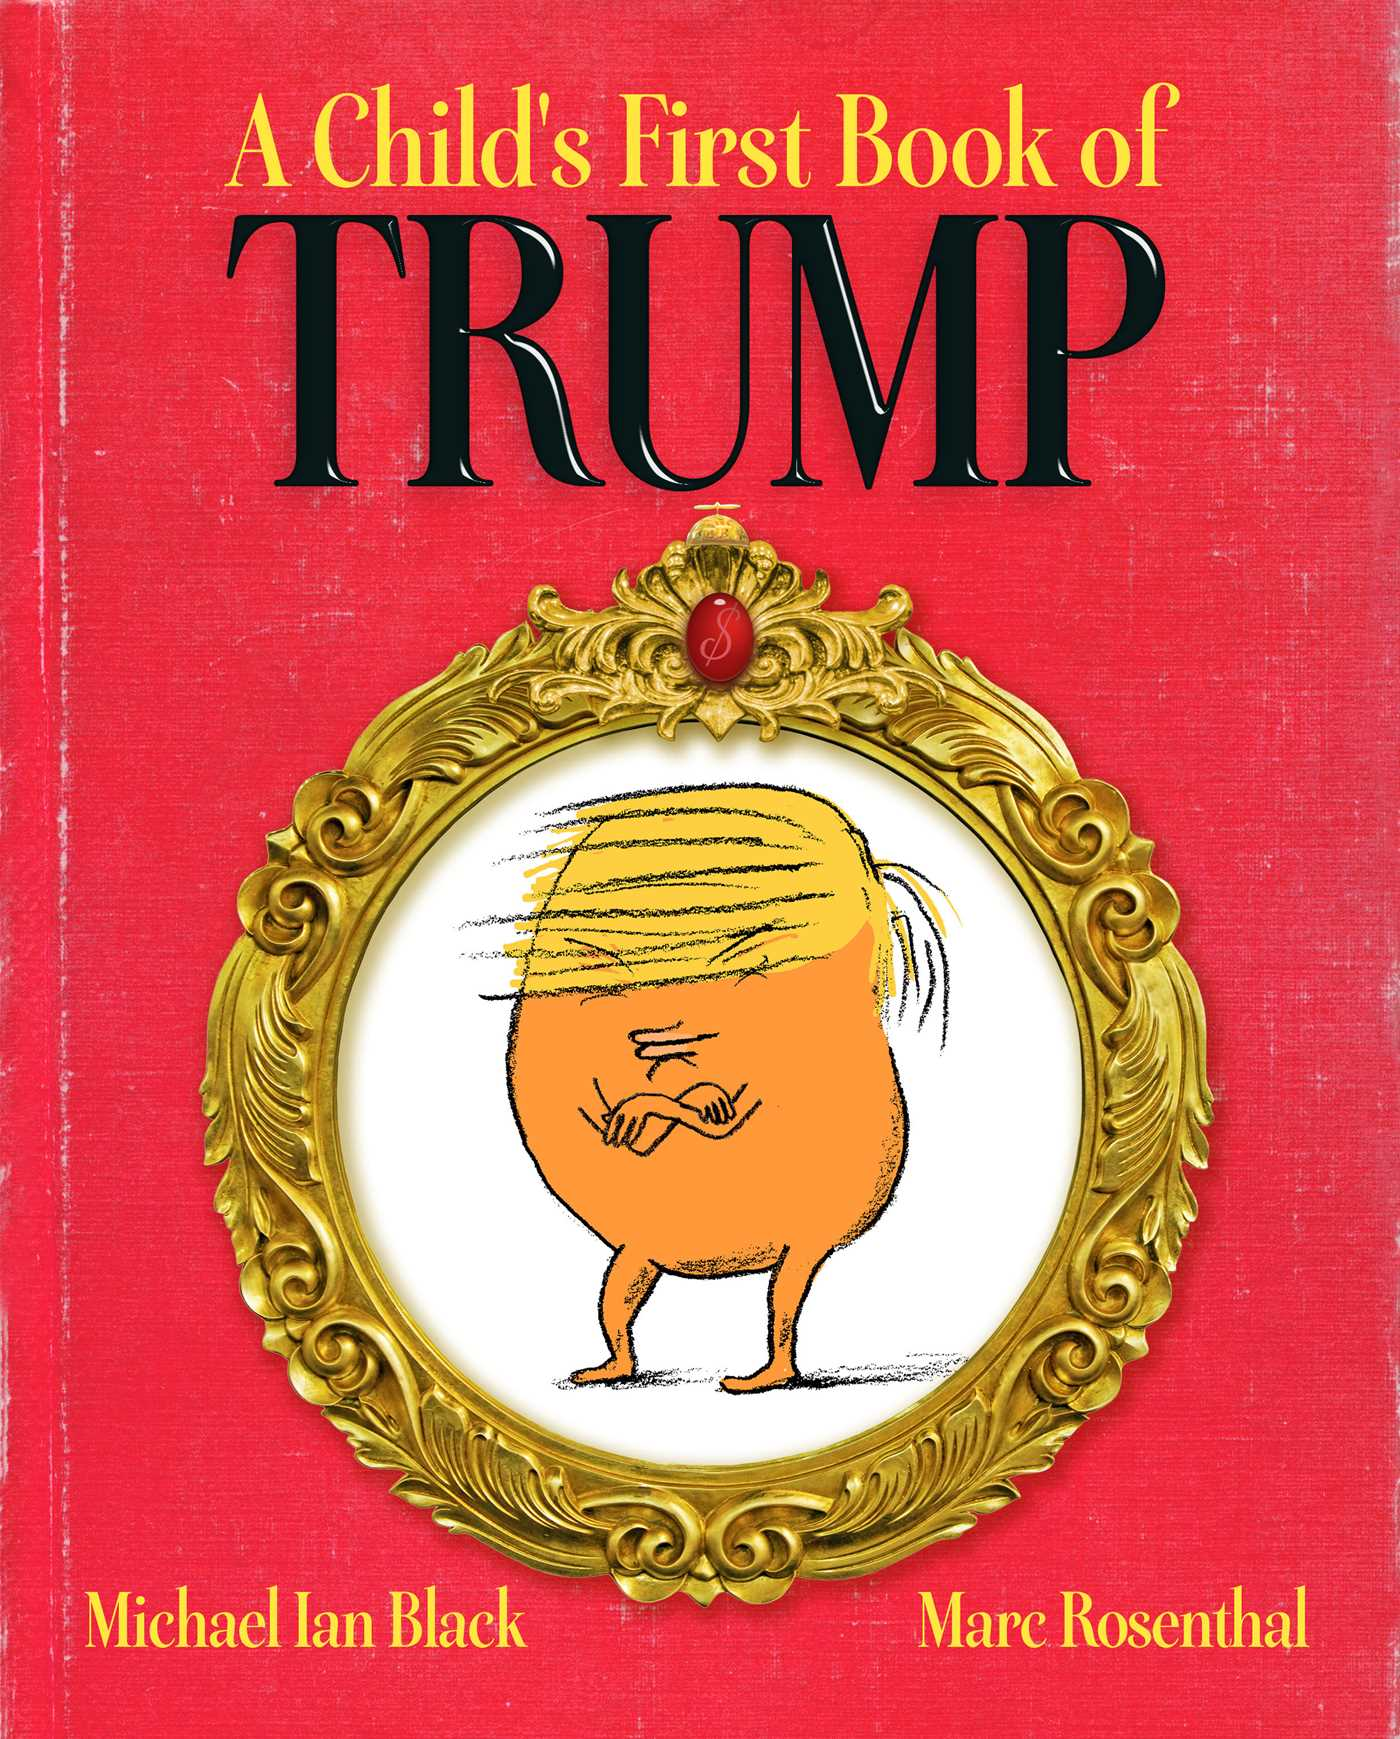 Image result for a child's first book of Trump publisher